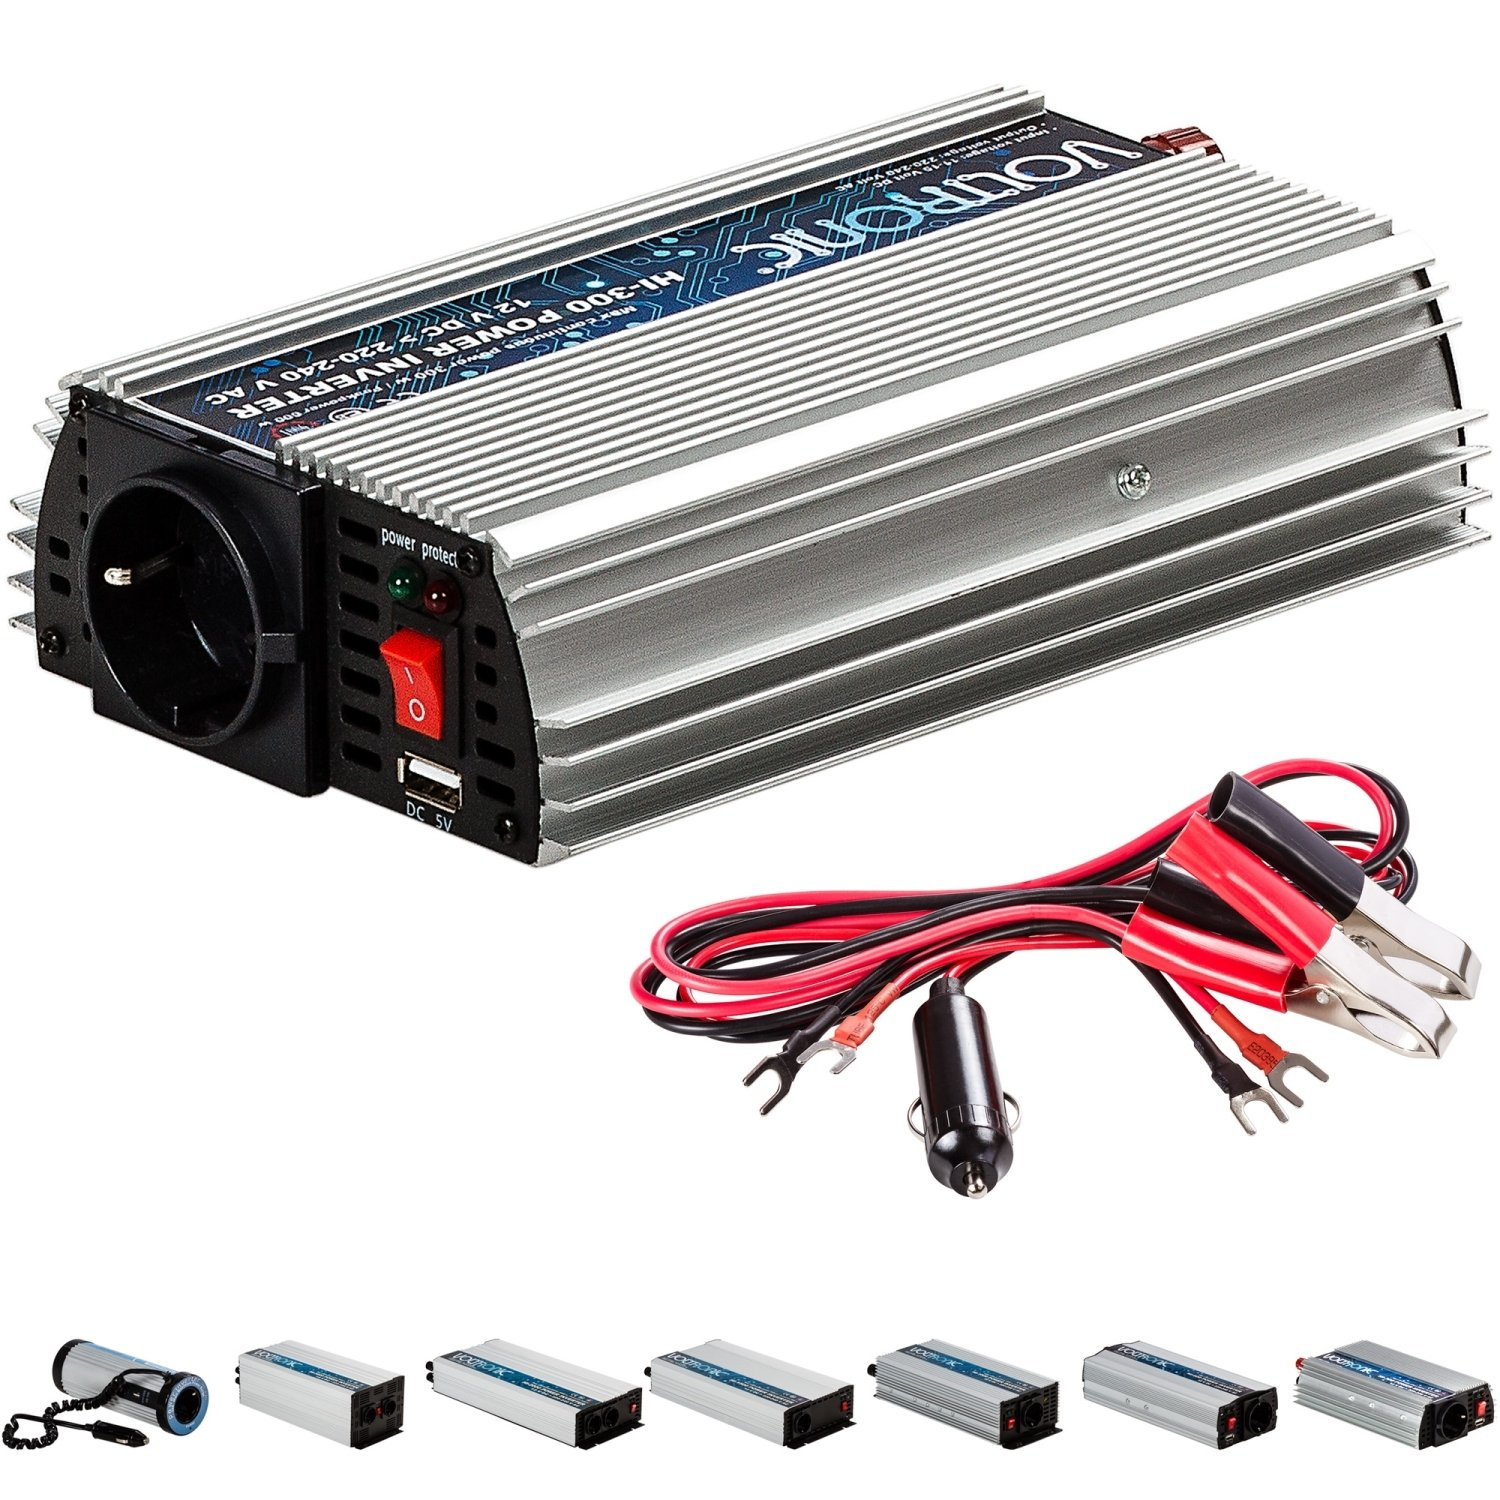 VOLTRONIC V Electronic Sinus Modificado. Coche Inverter ...